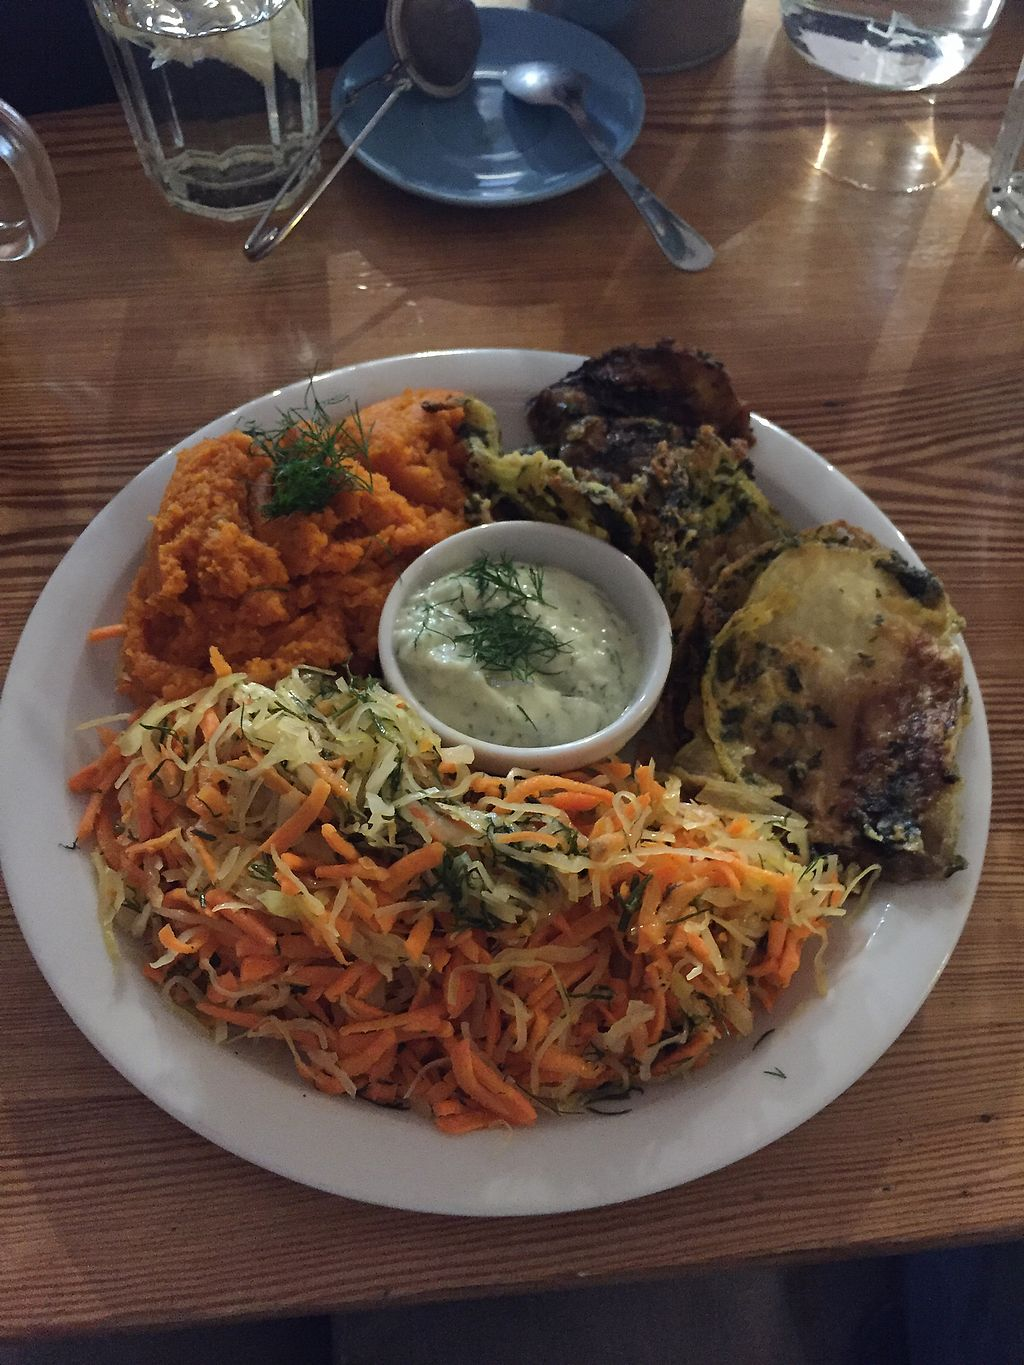 """Photo of Korzenie   by <a href=""""/members/profile/farucha"""">farucha</a> <br/>Aubergine Fritters with carrot mash and dill mayo <br/> September 2, 2017  - <a href='/contact/abuse/image/59043/299975'>Report</a>"""